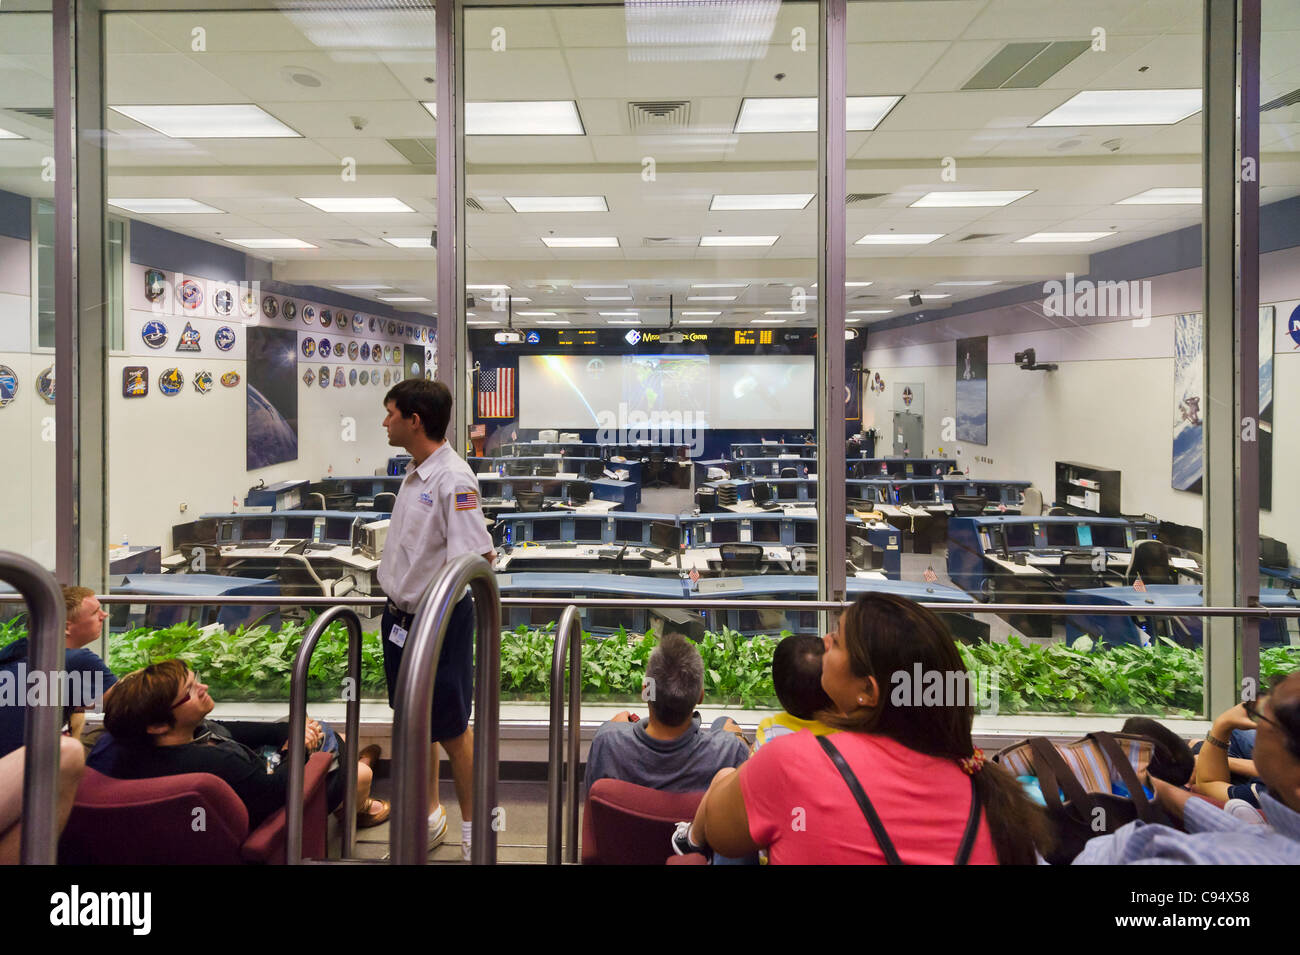 Visitors on a guided tour of the Mission Control Center at the Johnson Space Center, Houston, Texas, USA - Stock Image